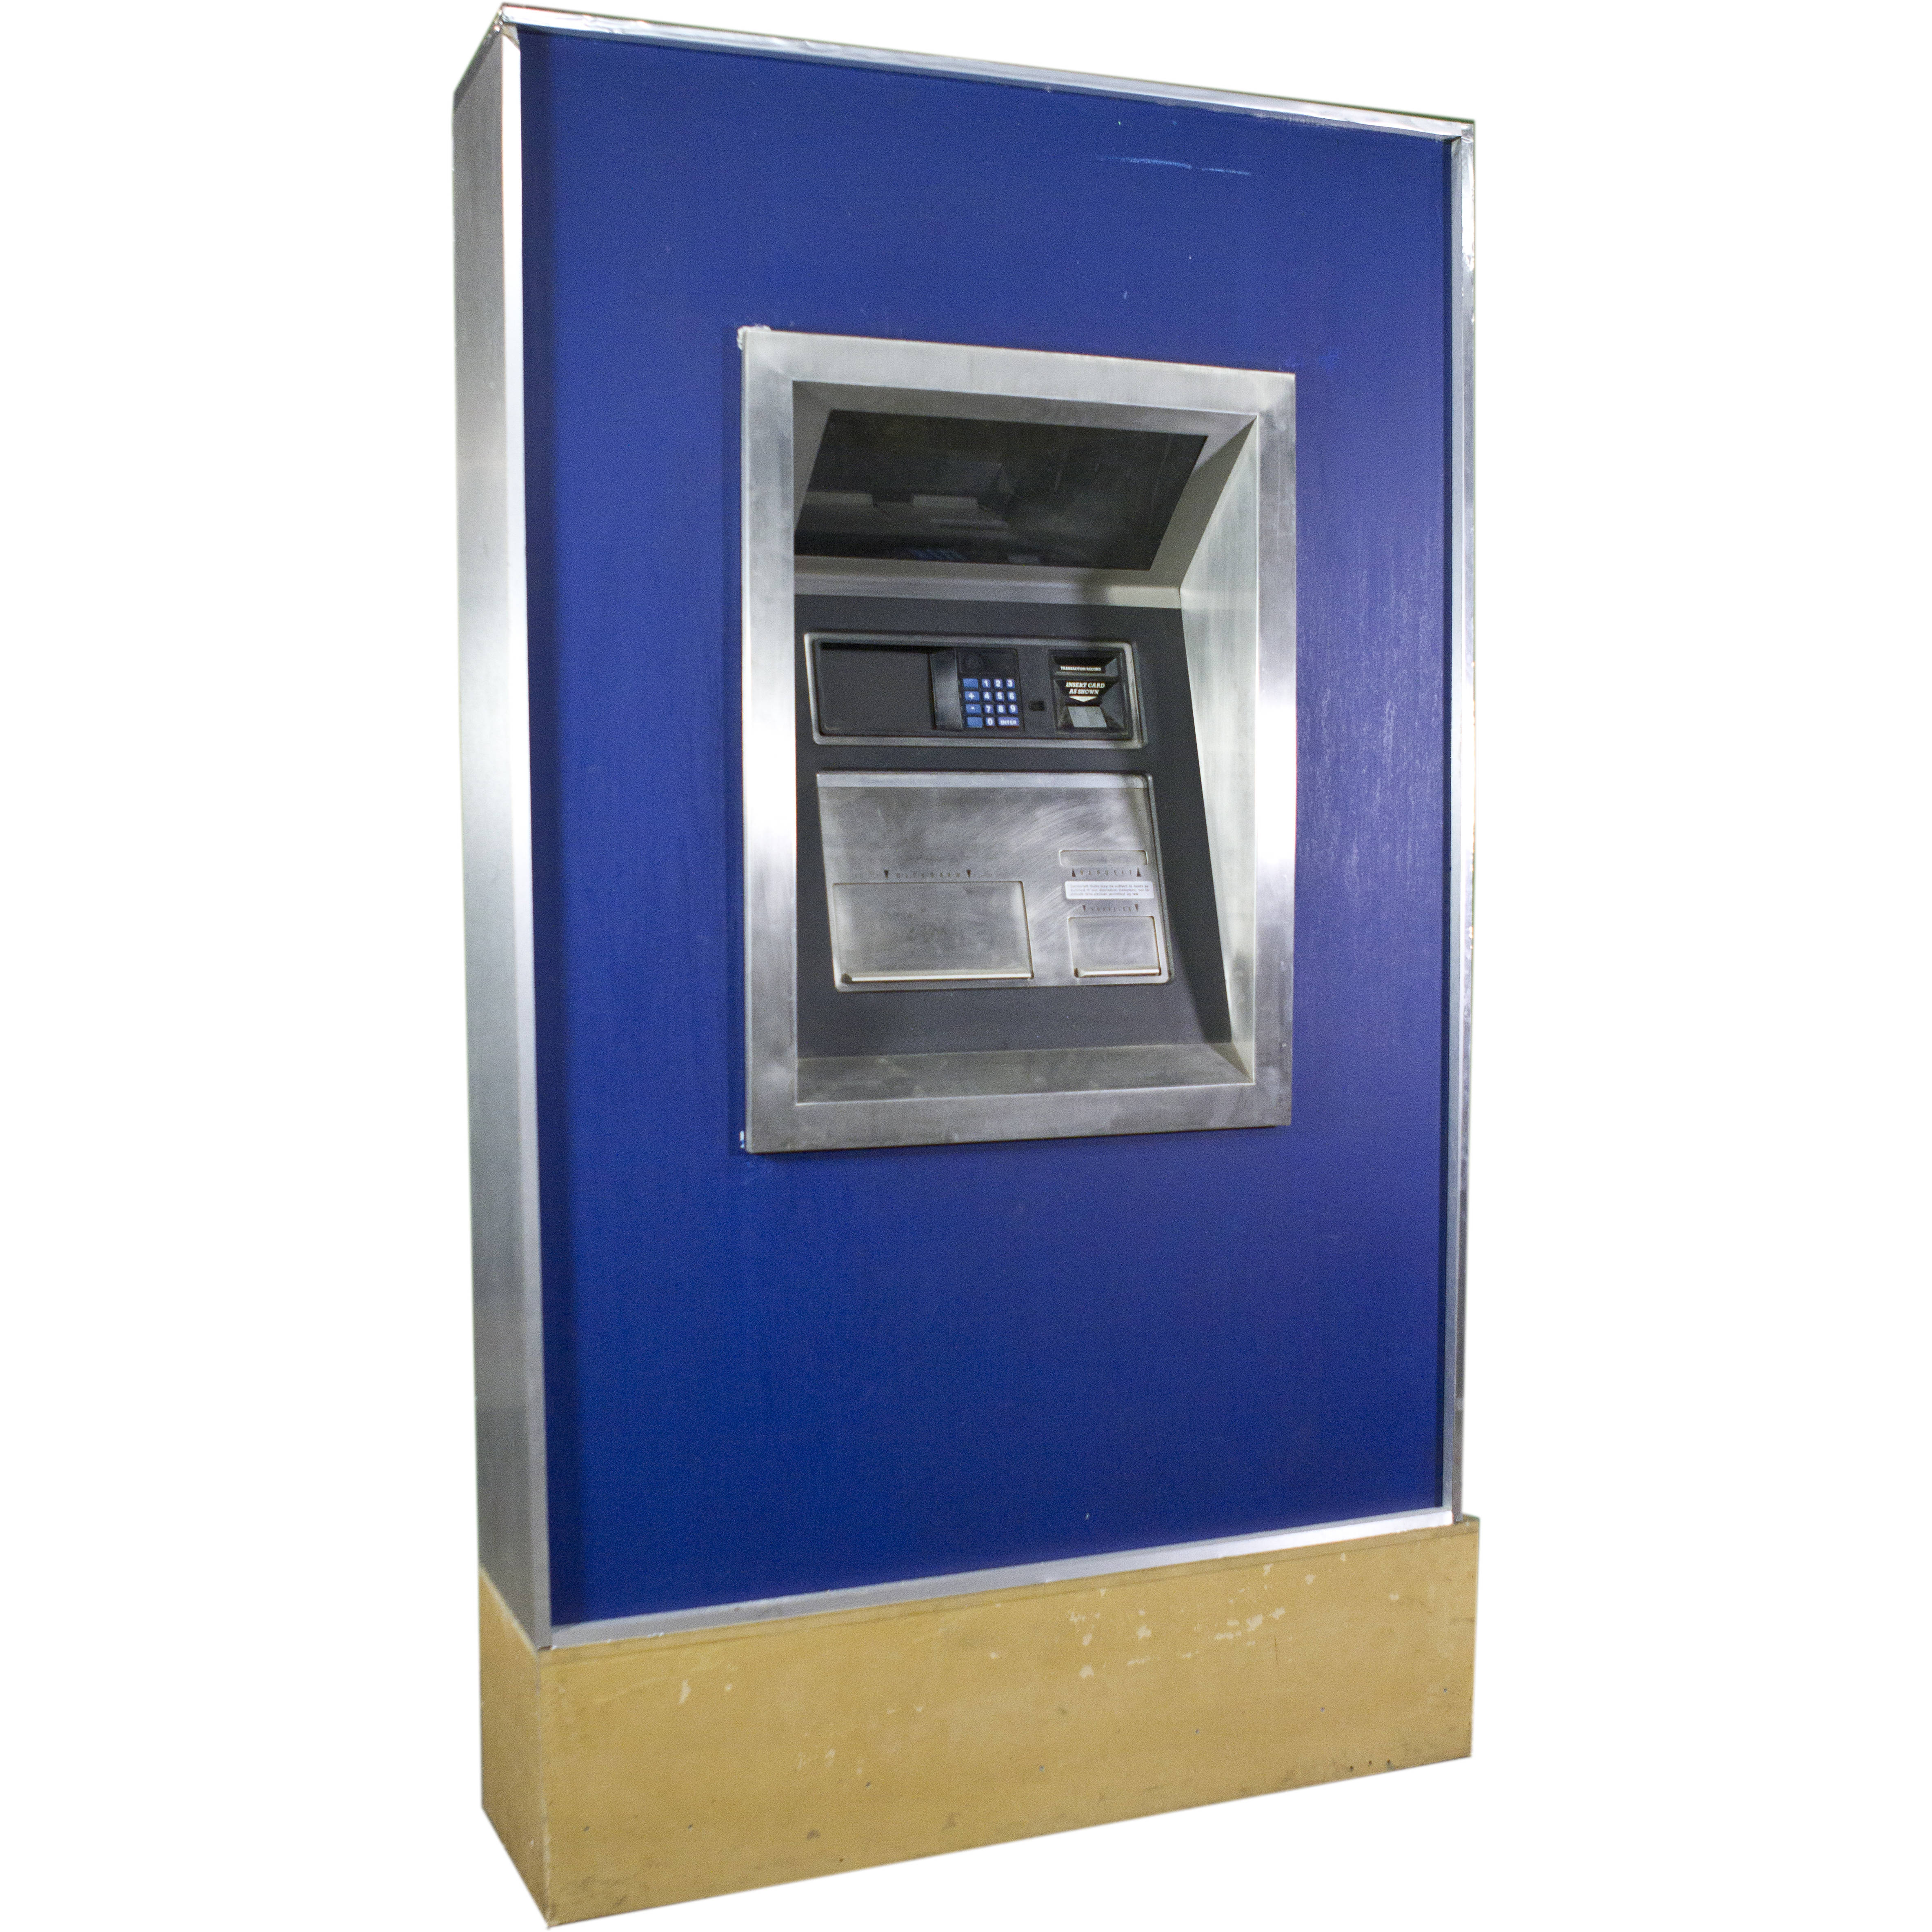 Atm Machine Wall Mount Air Designs